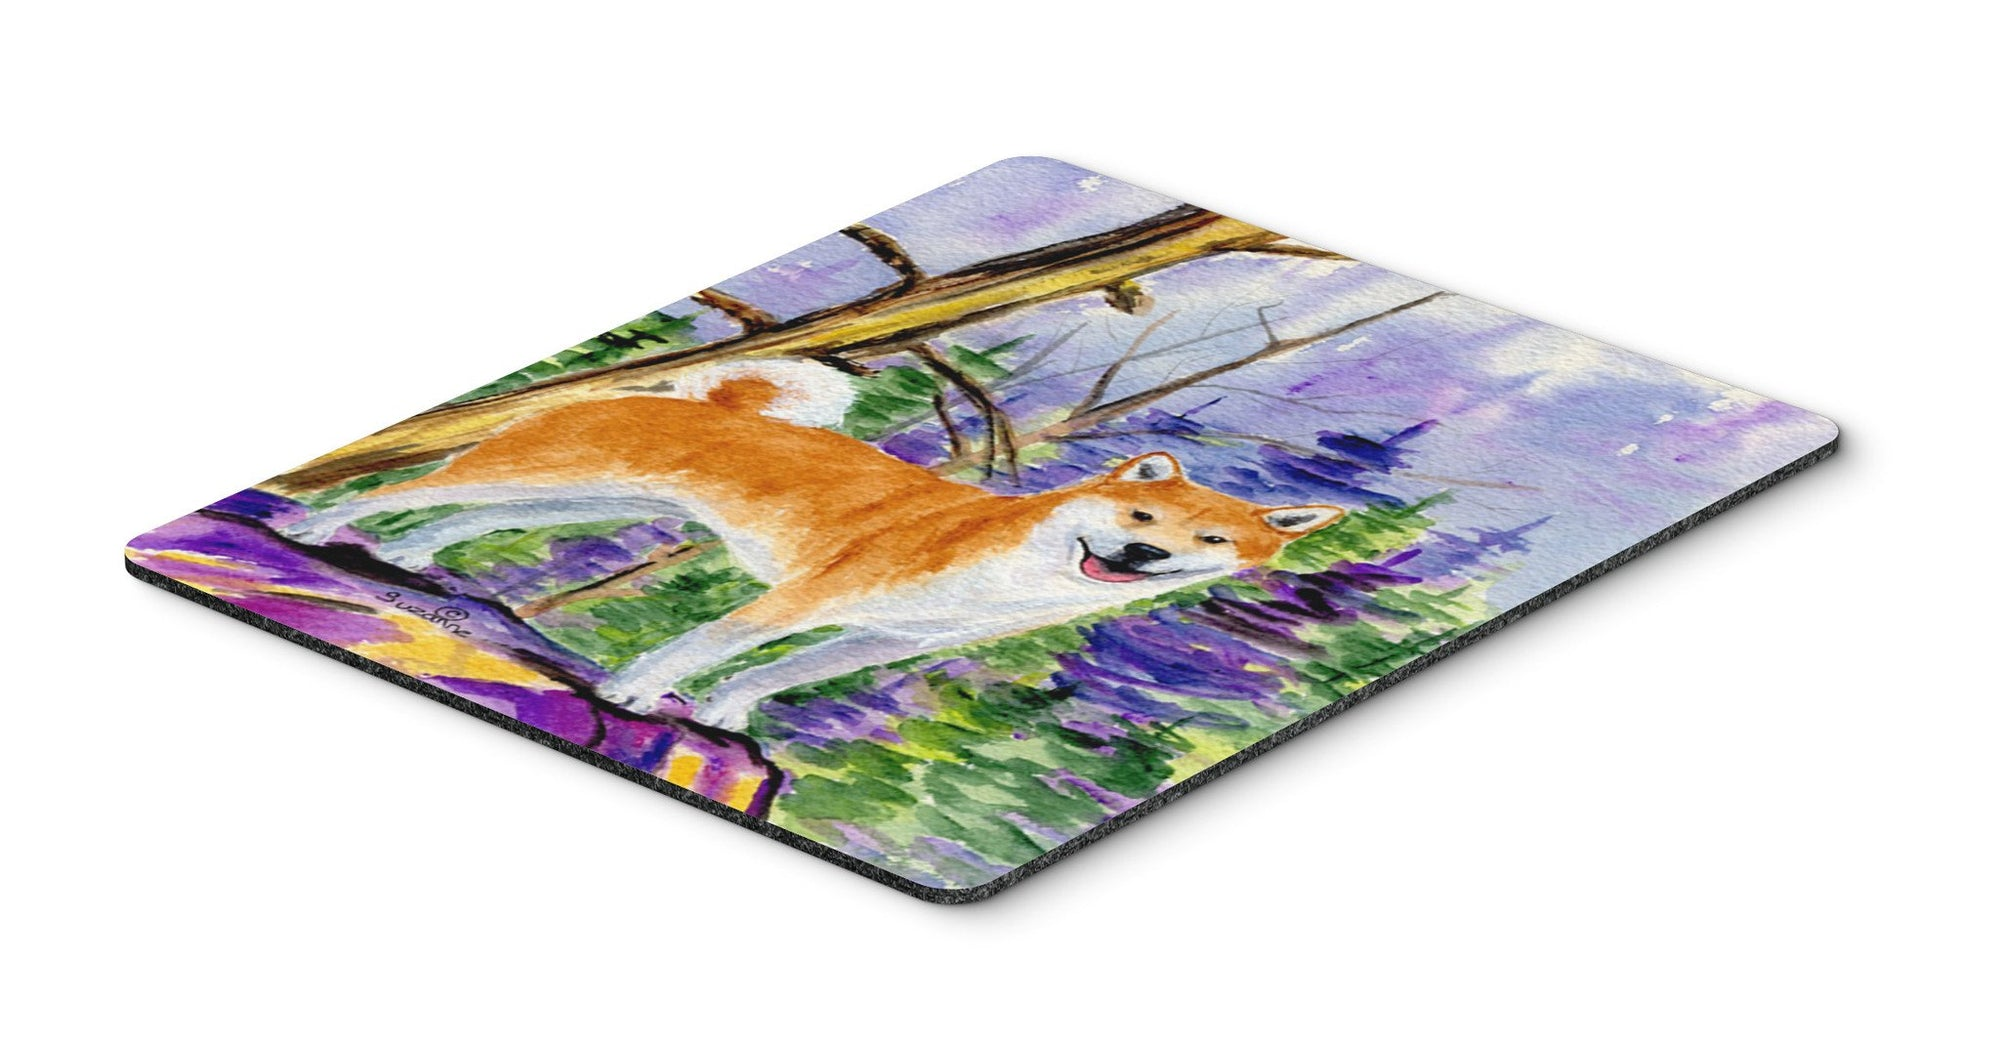 Buy this Shiba Inu Mouse Pad, Hot Pad or Trivet